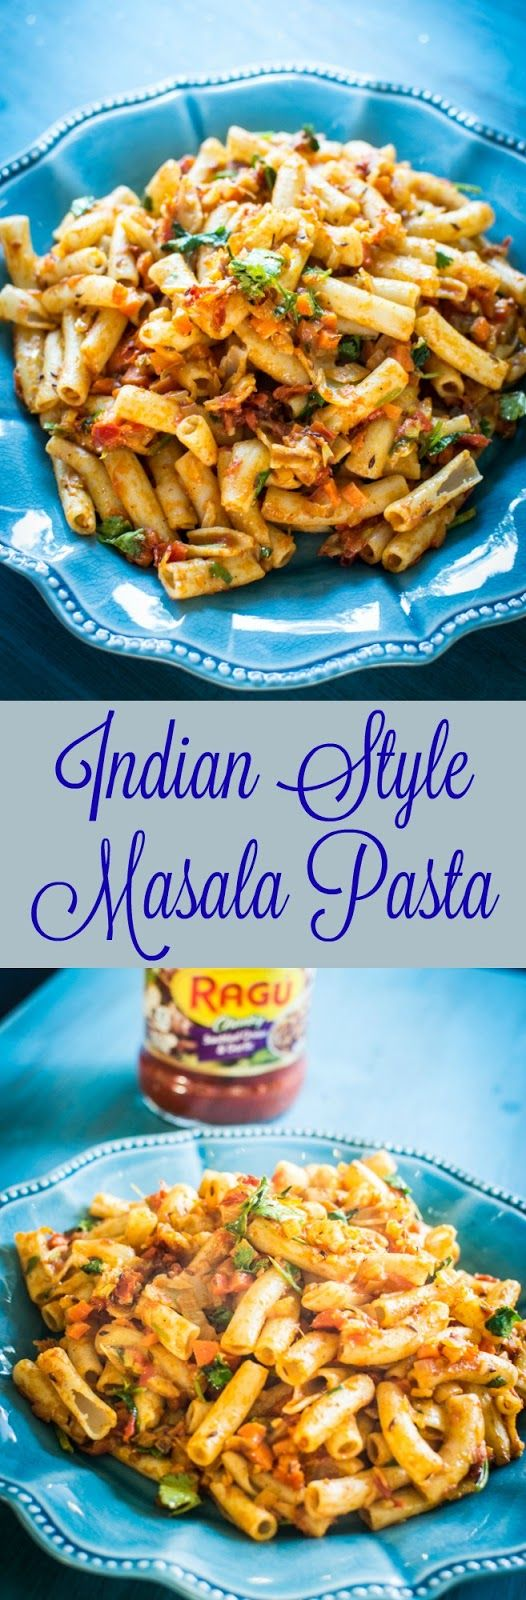 Indian Style Masala Pasta Recipe for holidays. #simmeredintradition ...